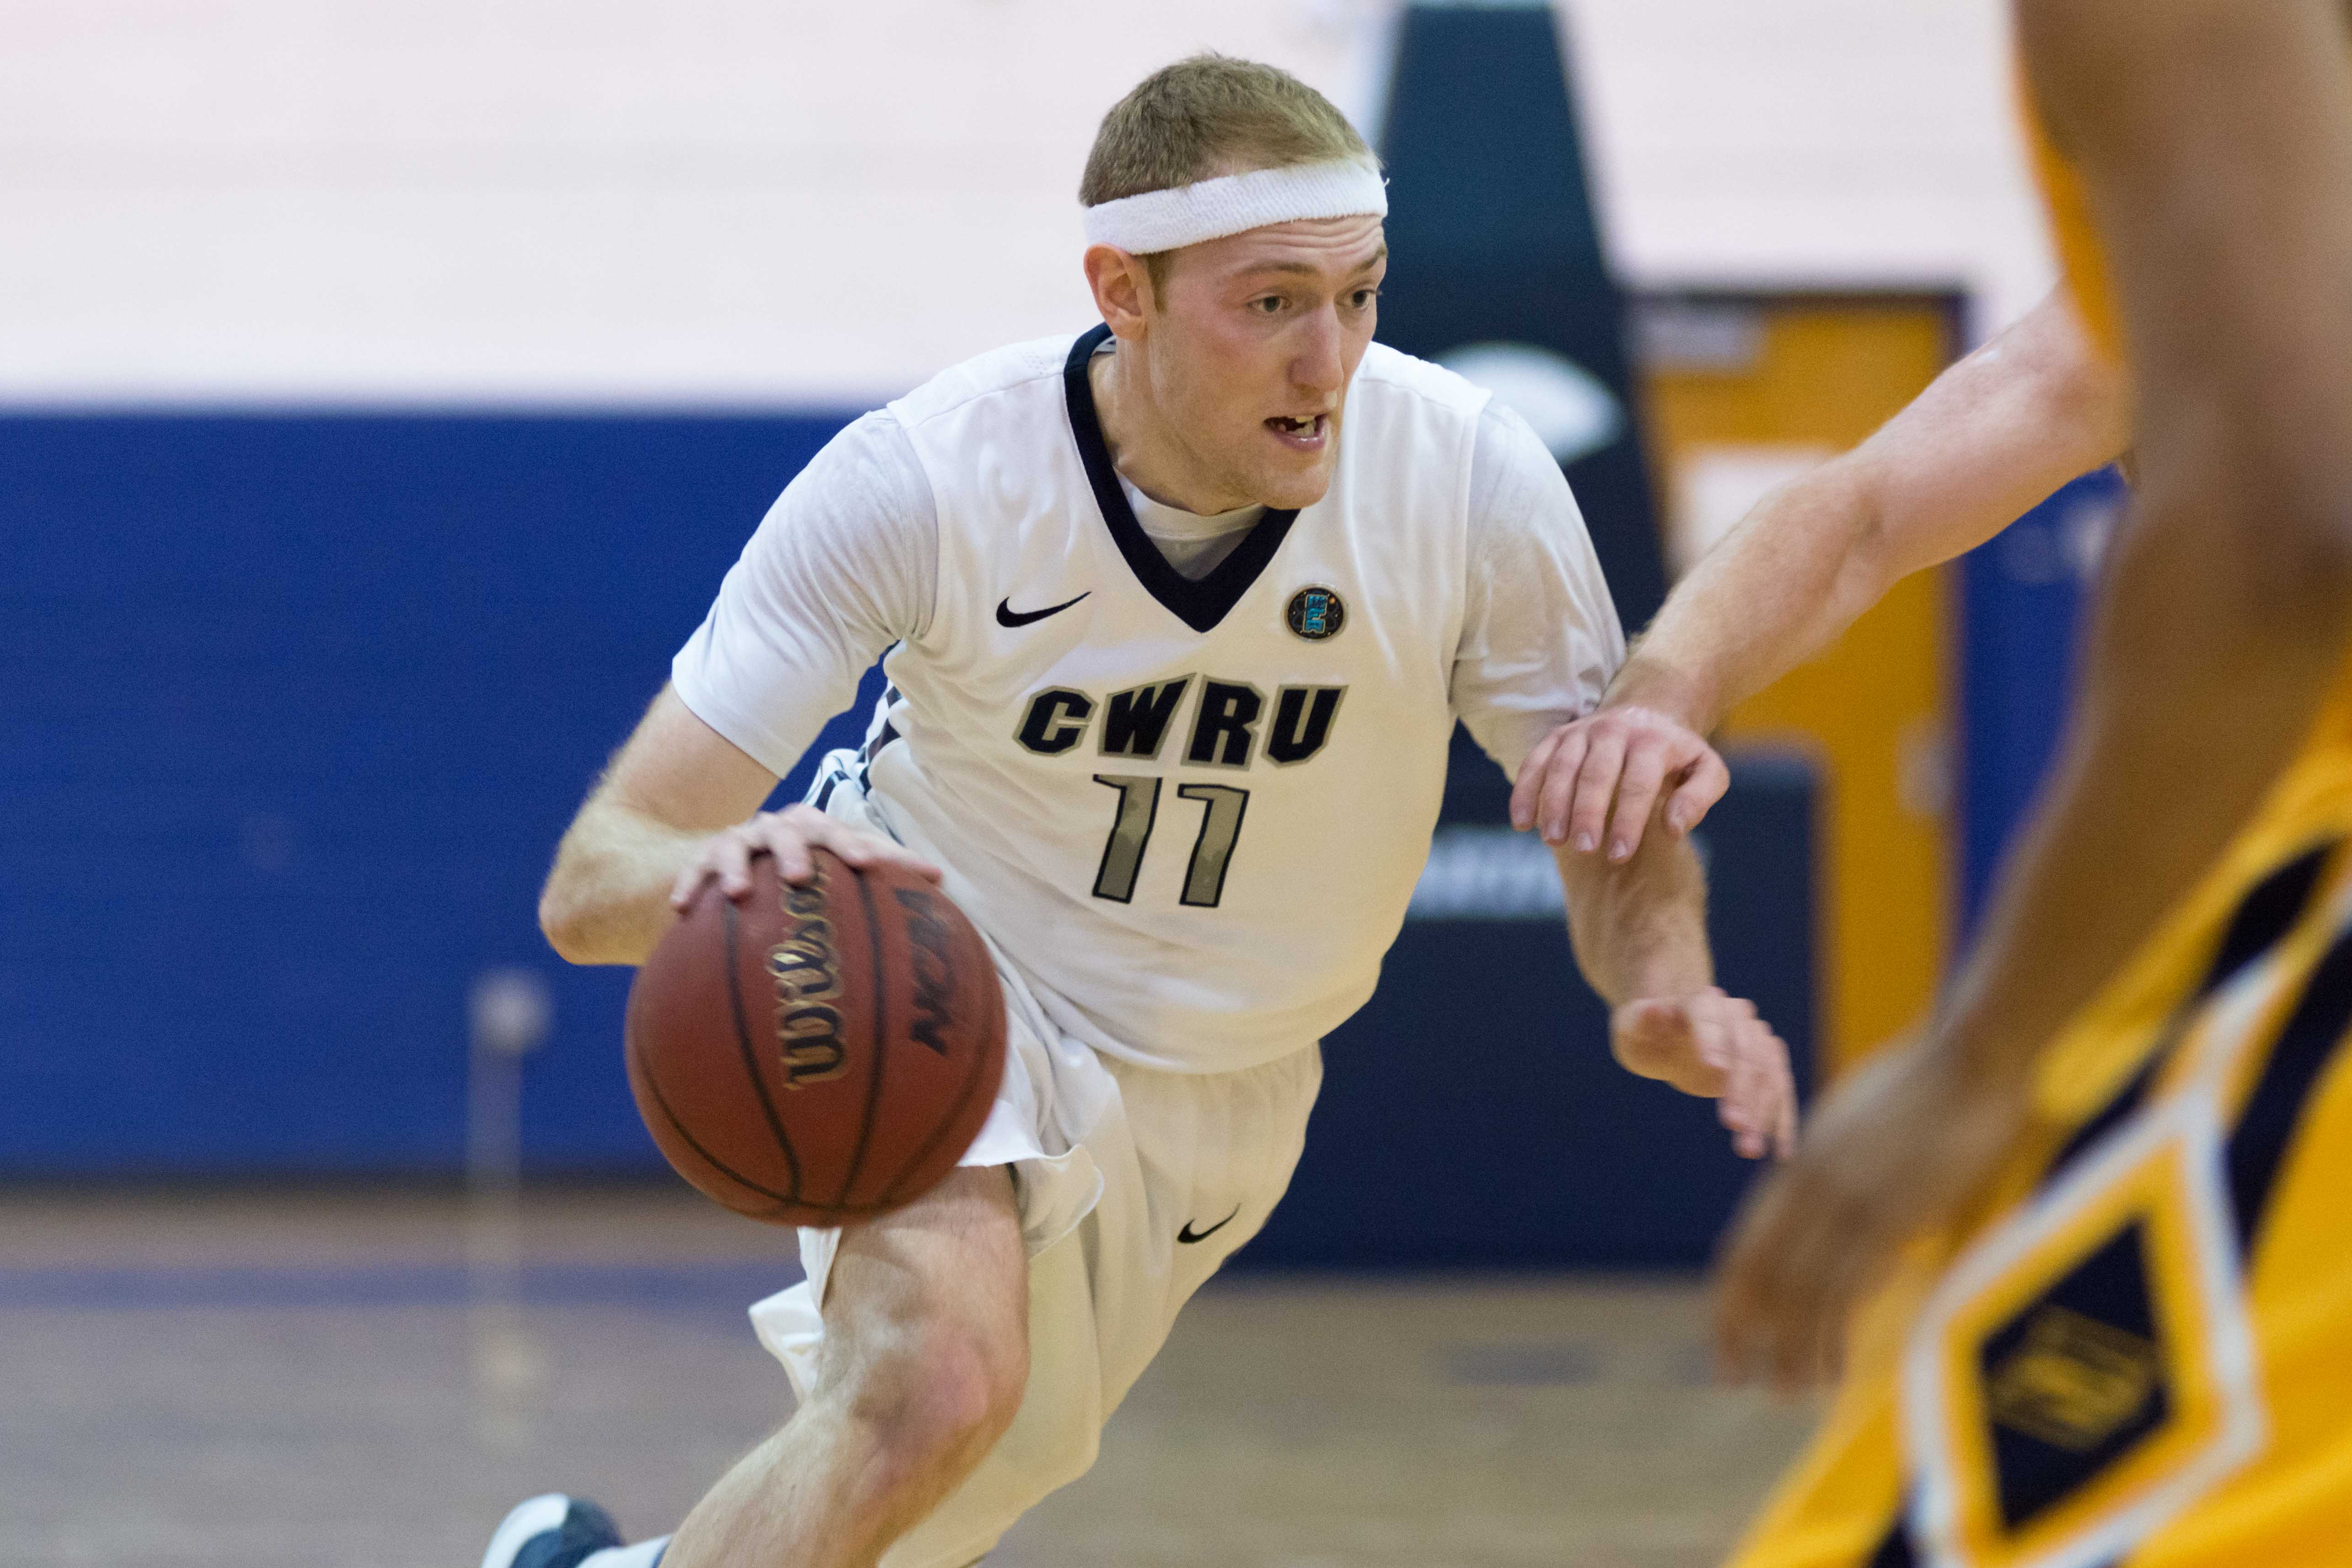 Fourth year Matt Clark's career game helped beat Emory in his last home game